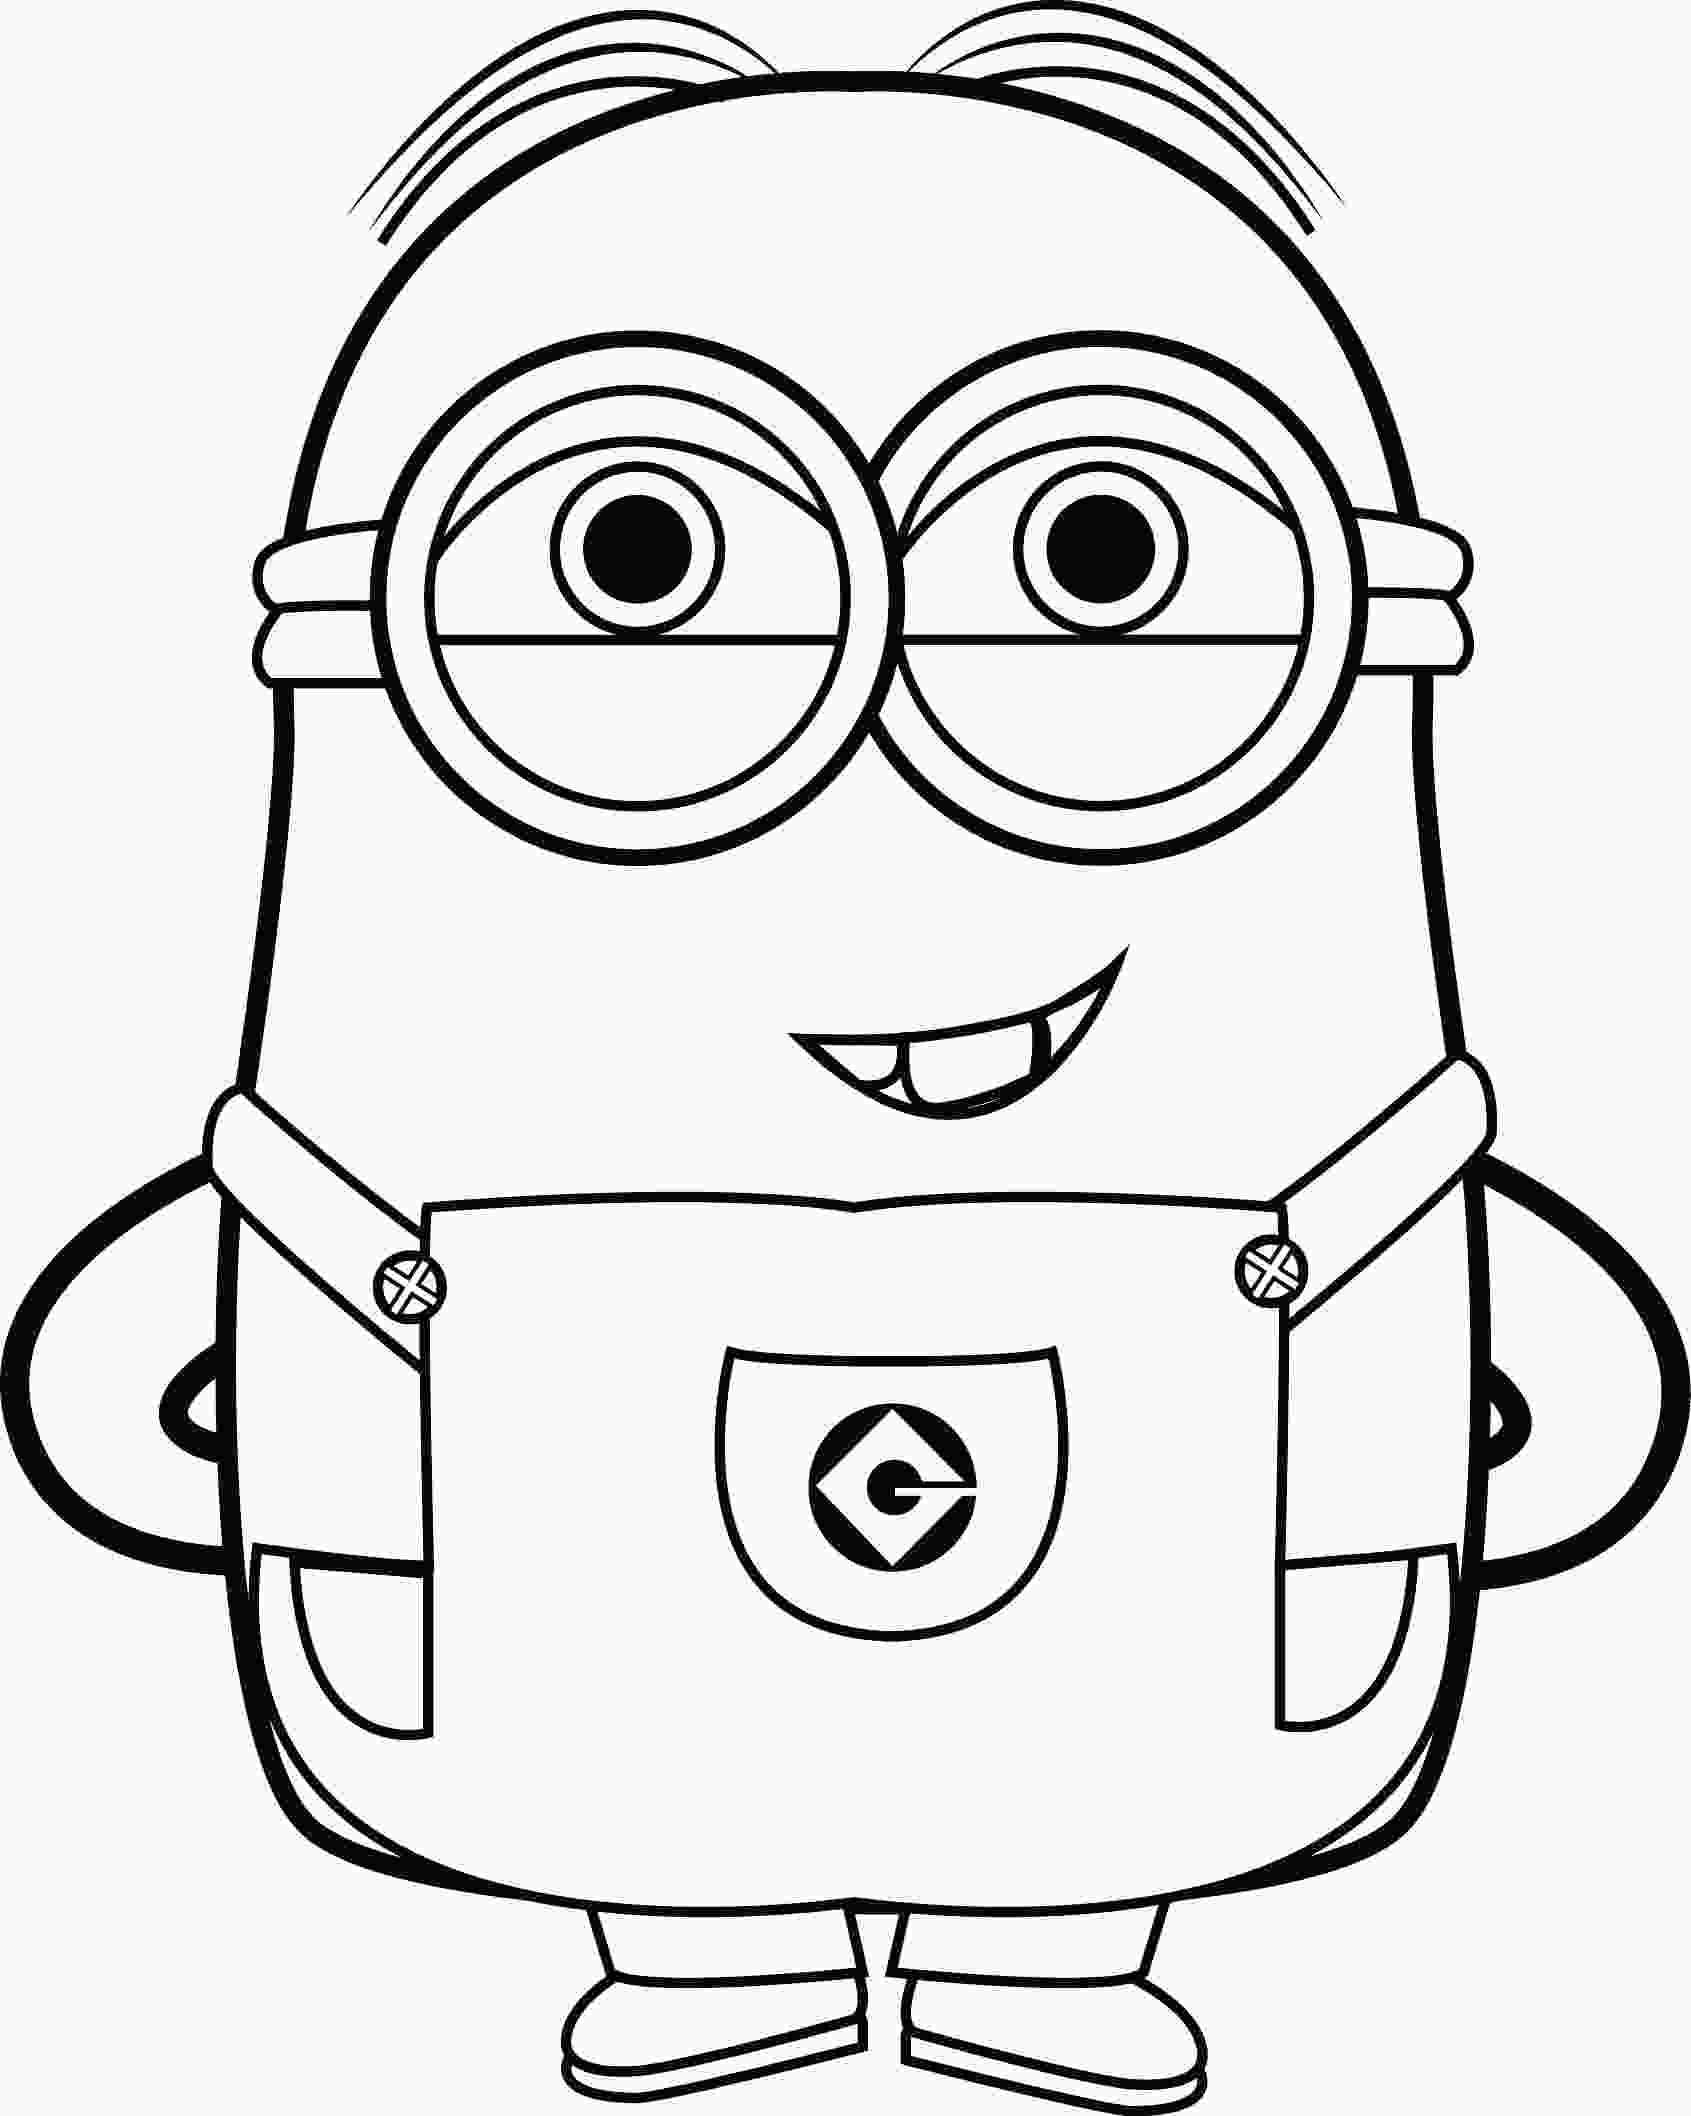 minions pictures color minions disegni da colorare e stampare minions coloring pages